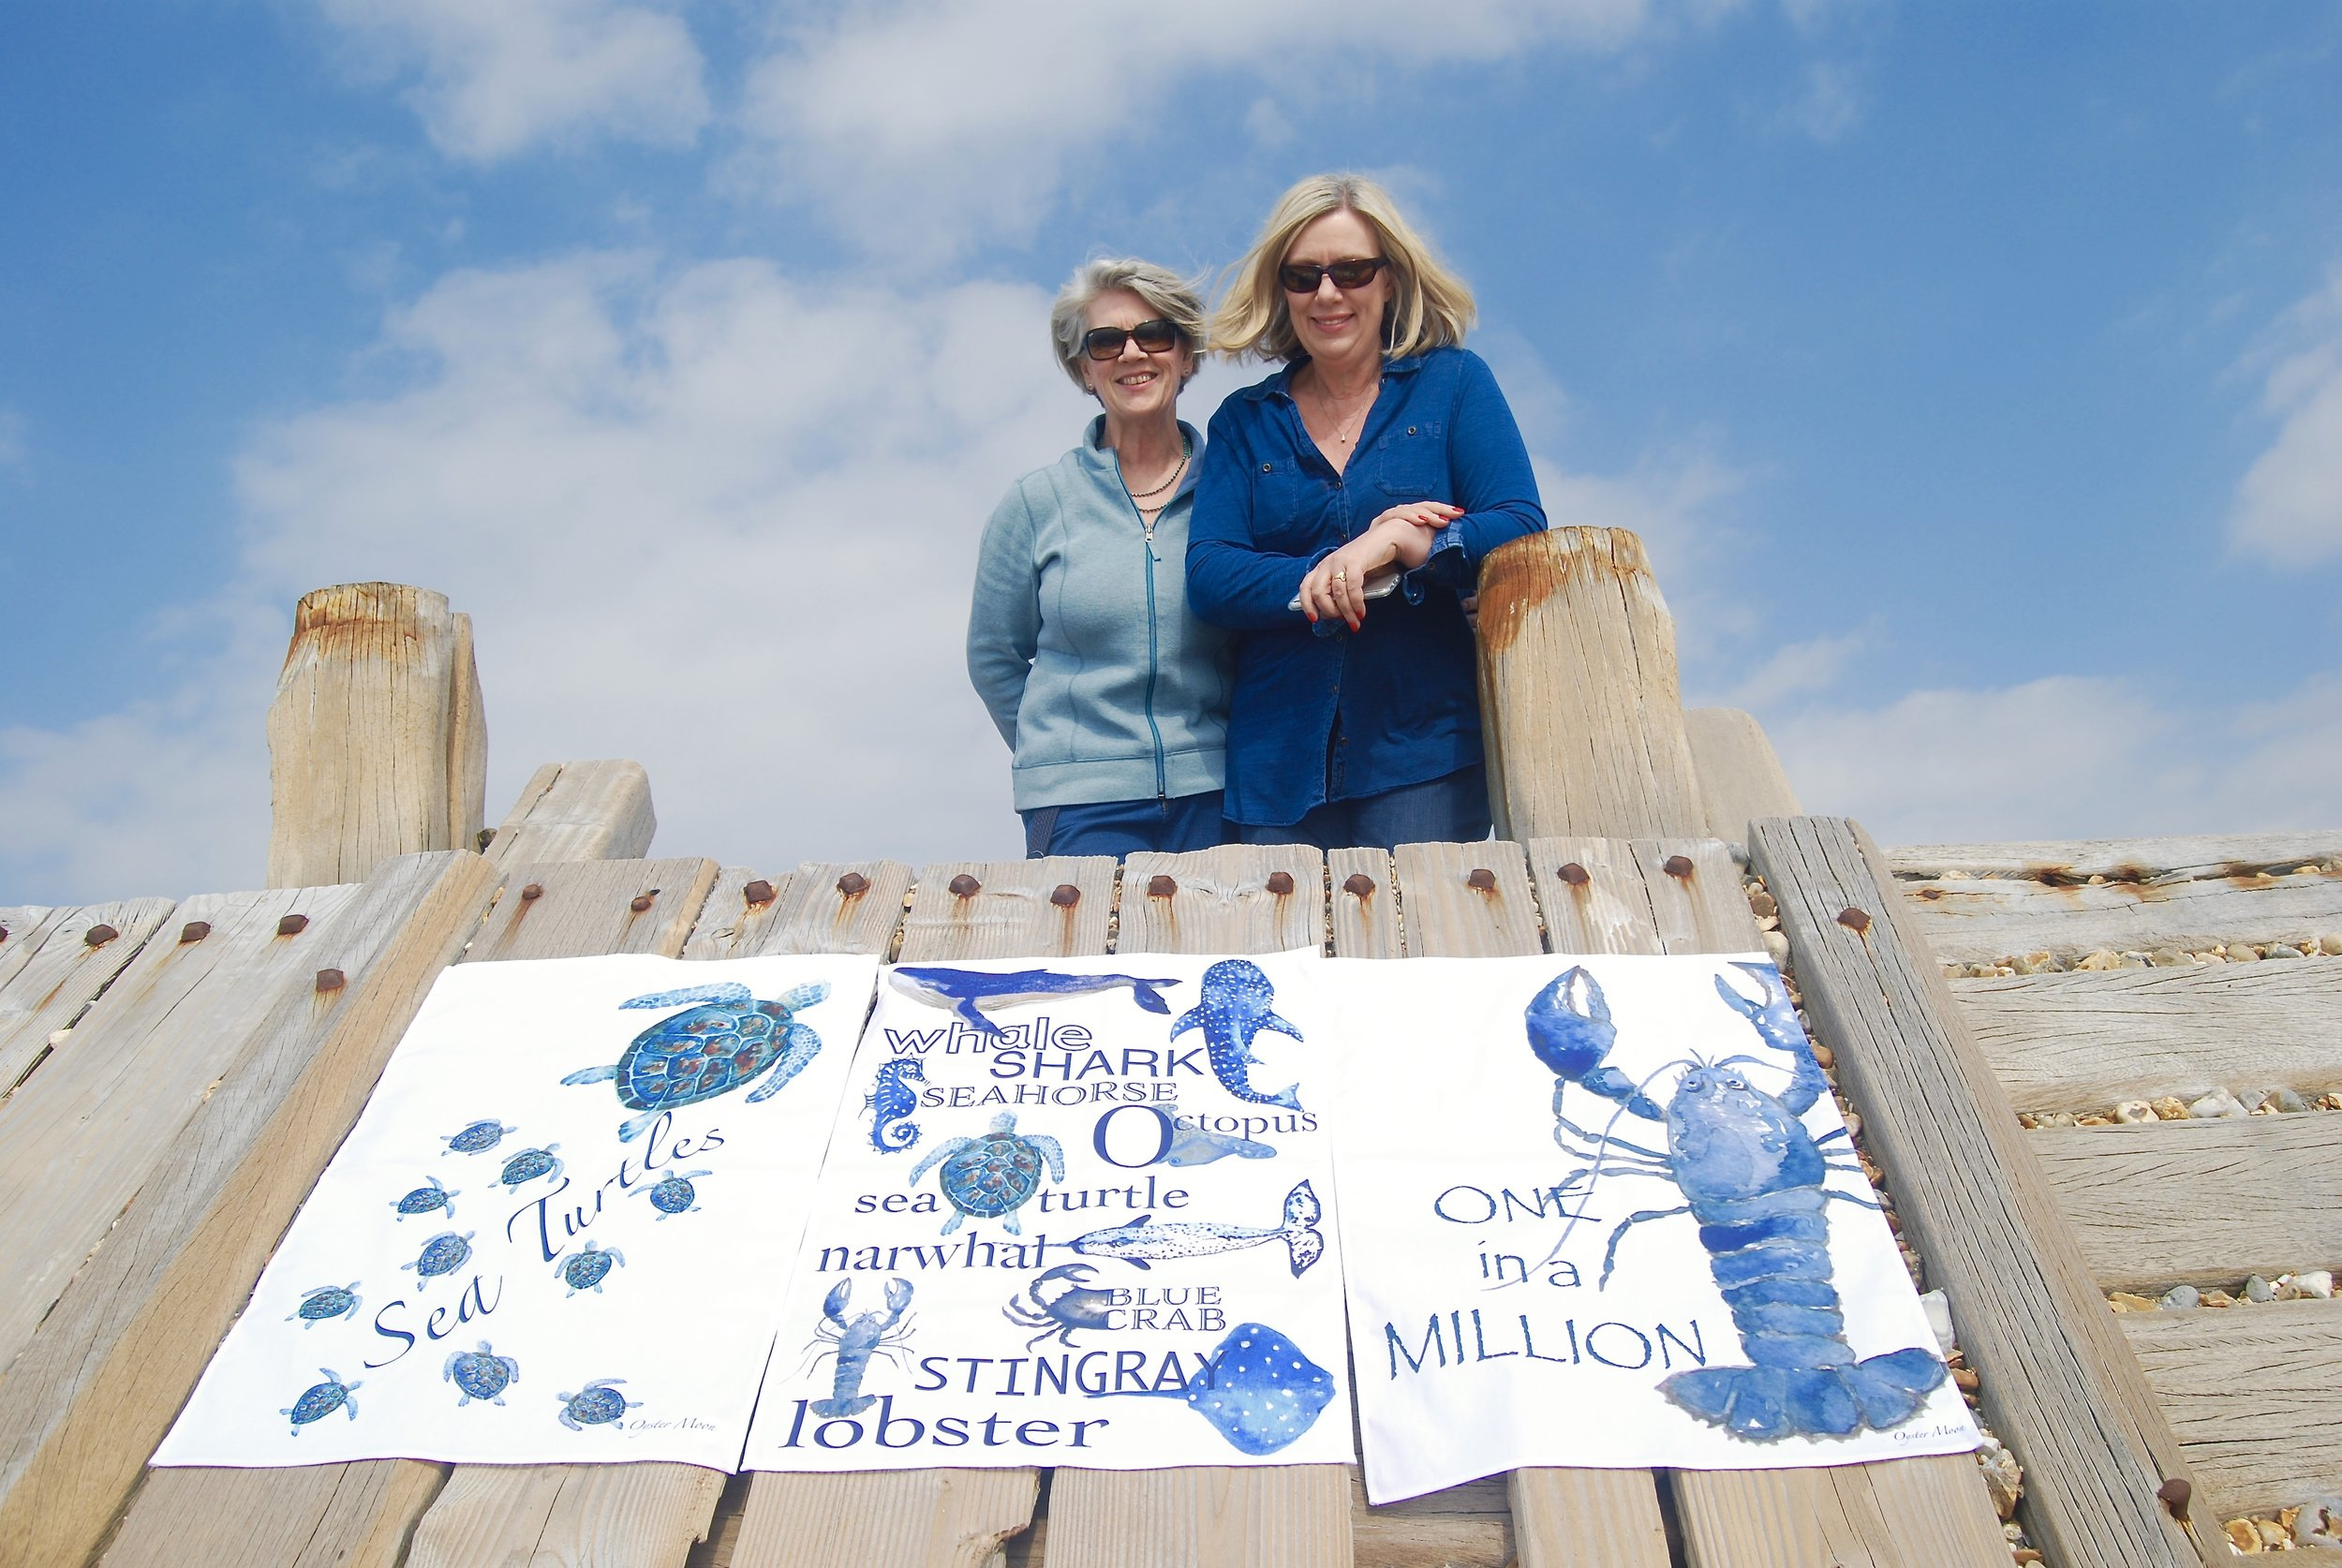 Gina & Michele - Oyster Moon with our new Tea Towels